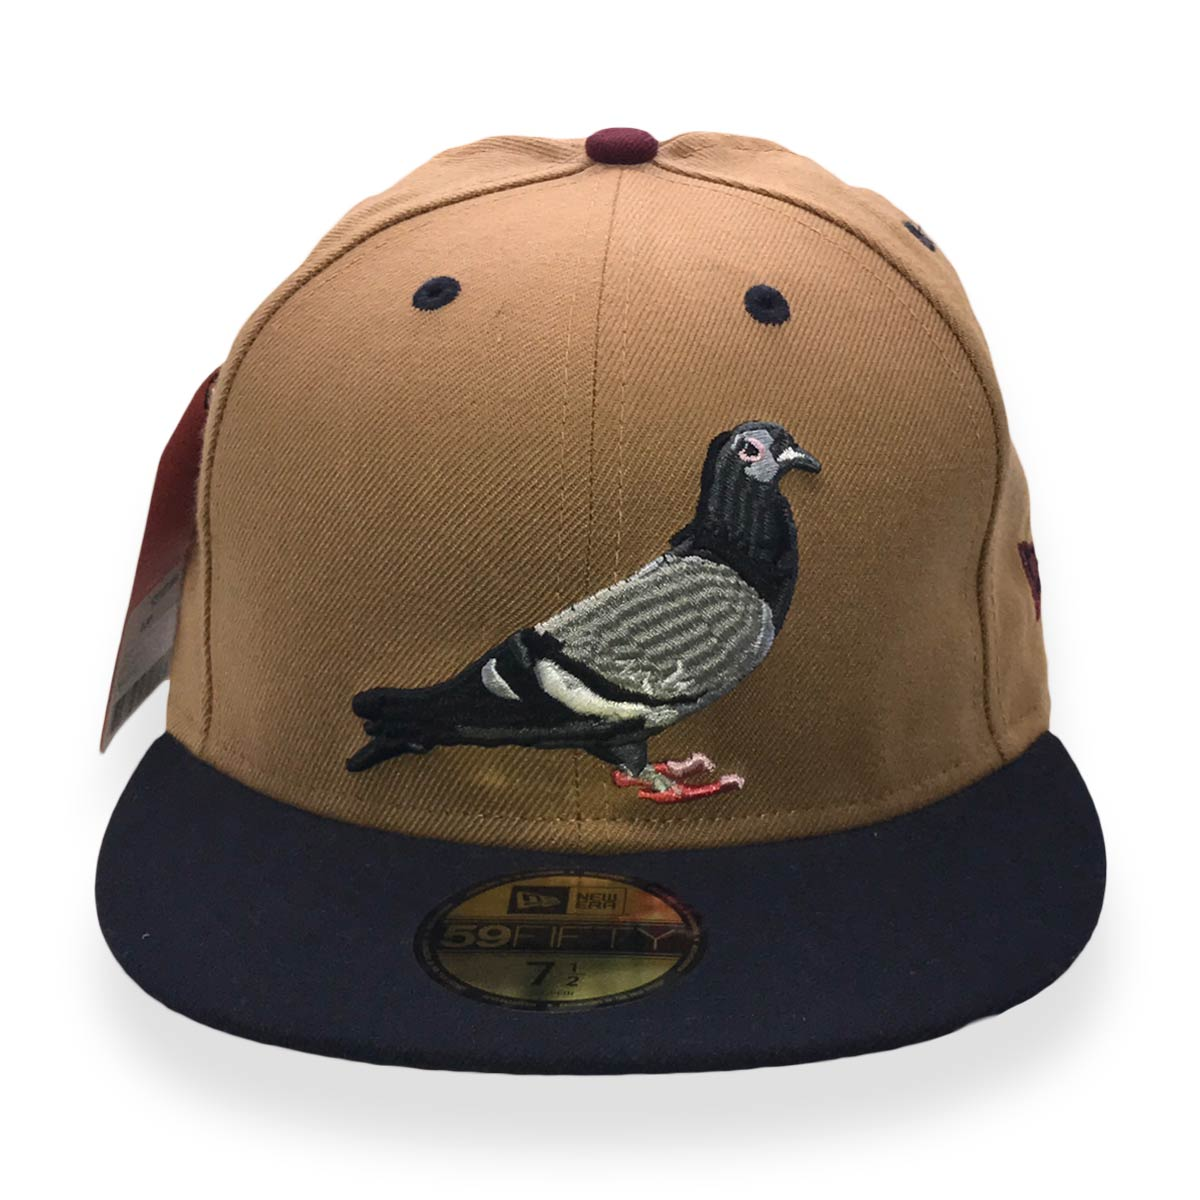 STAPLE X NEW ERA PIGEON 59FIFTY TAN MENS FITTED CAP – Last one left fa36711350d4